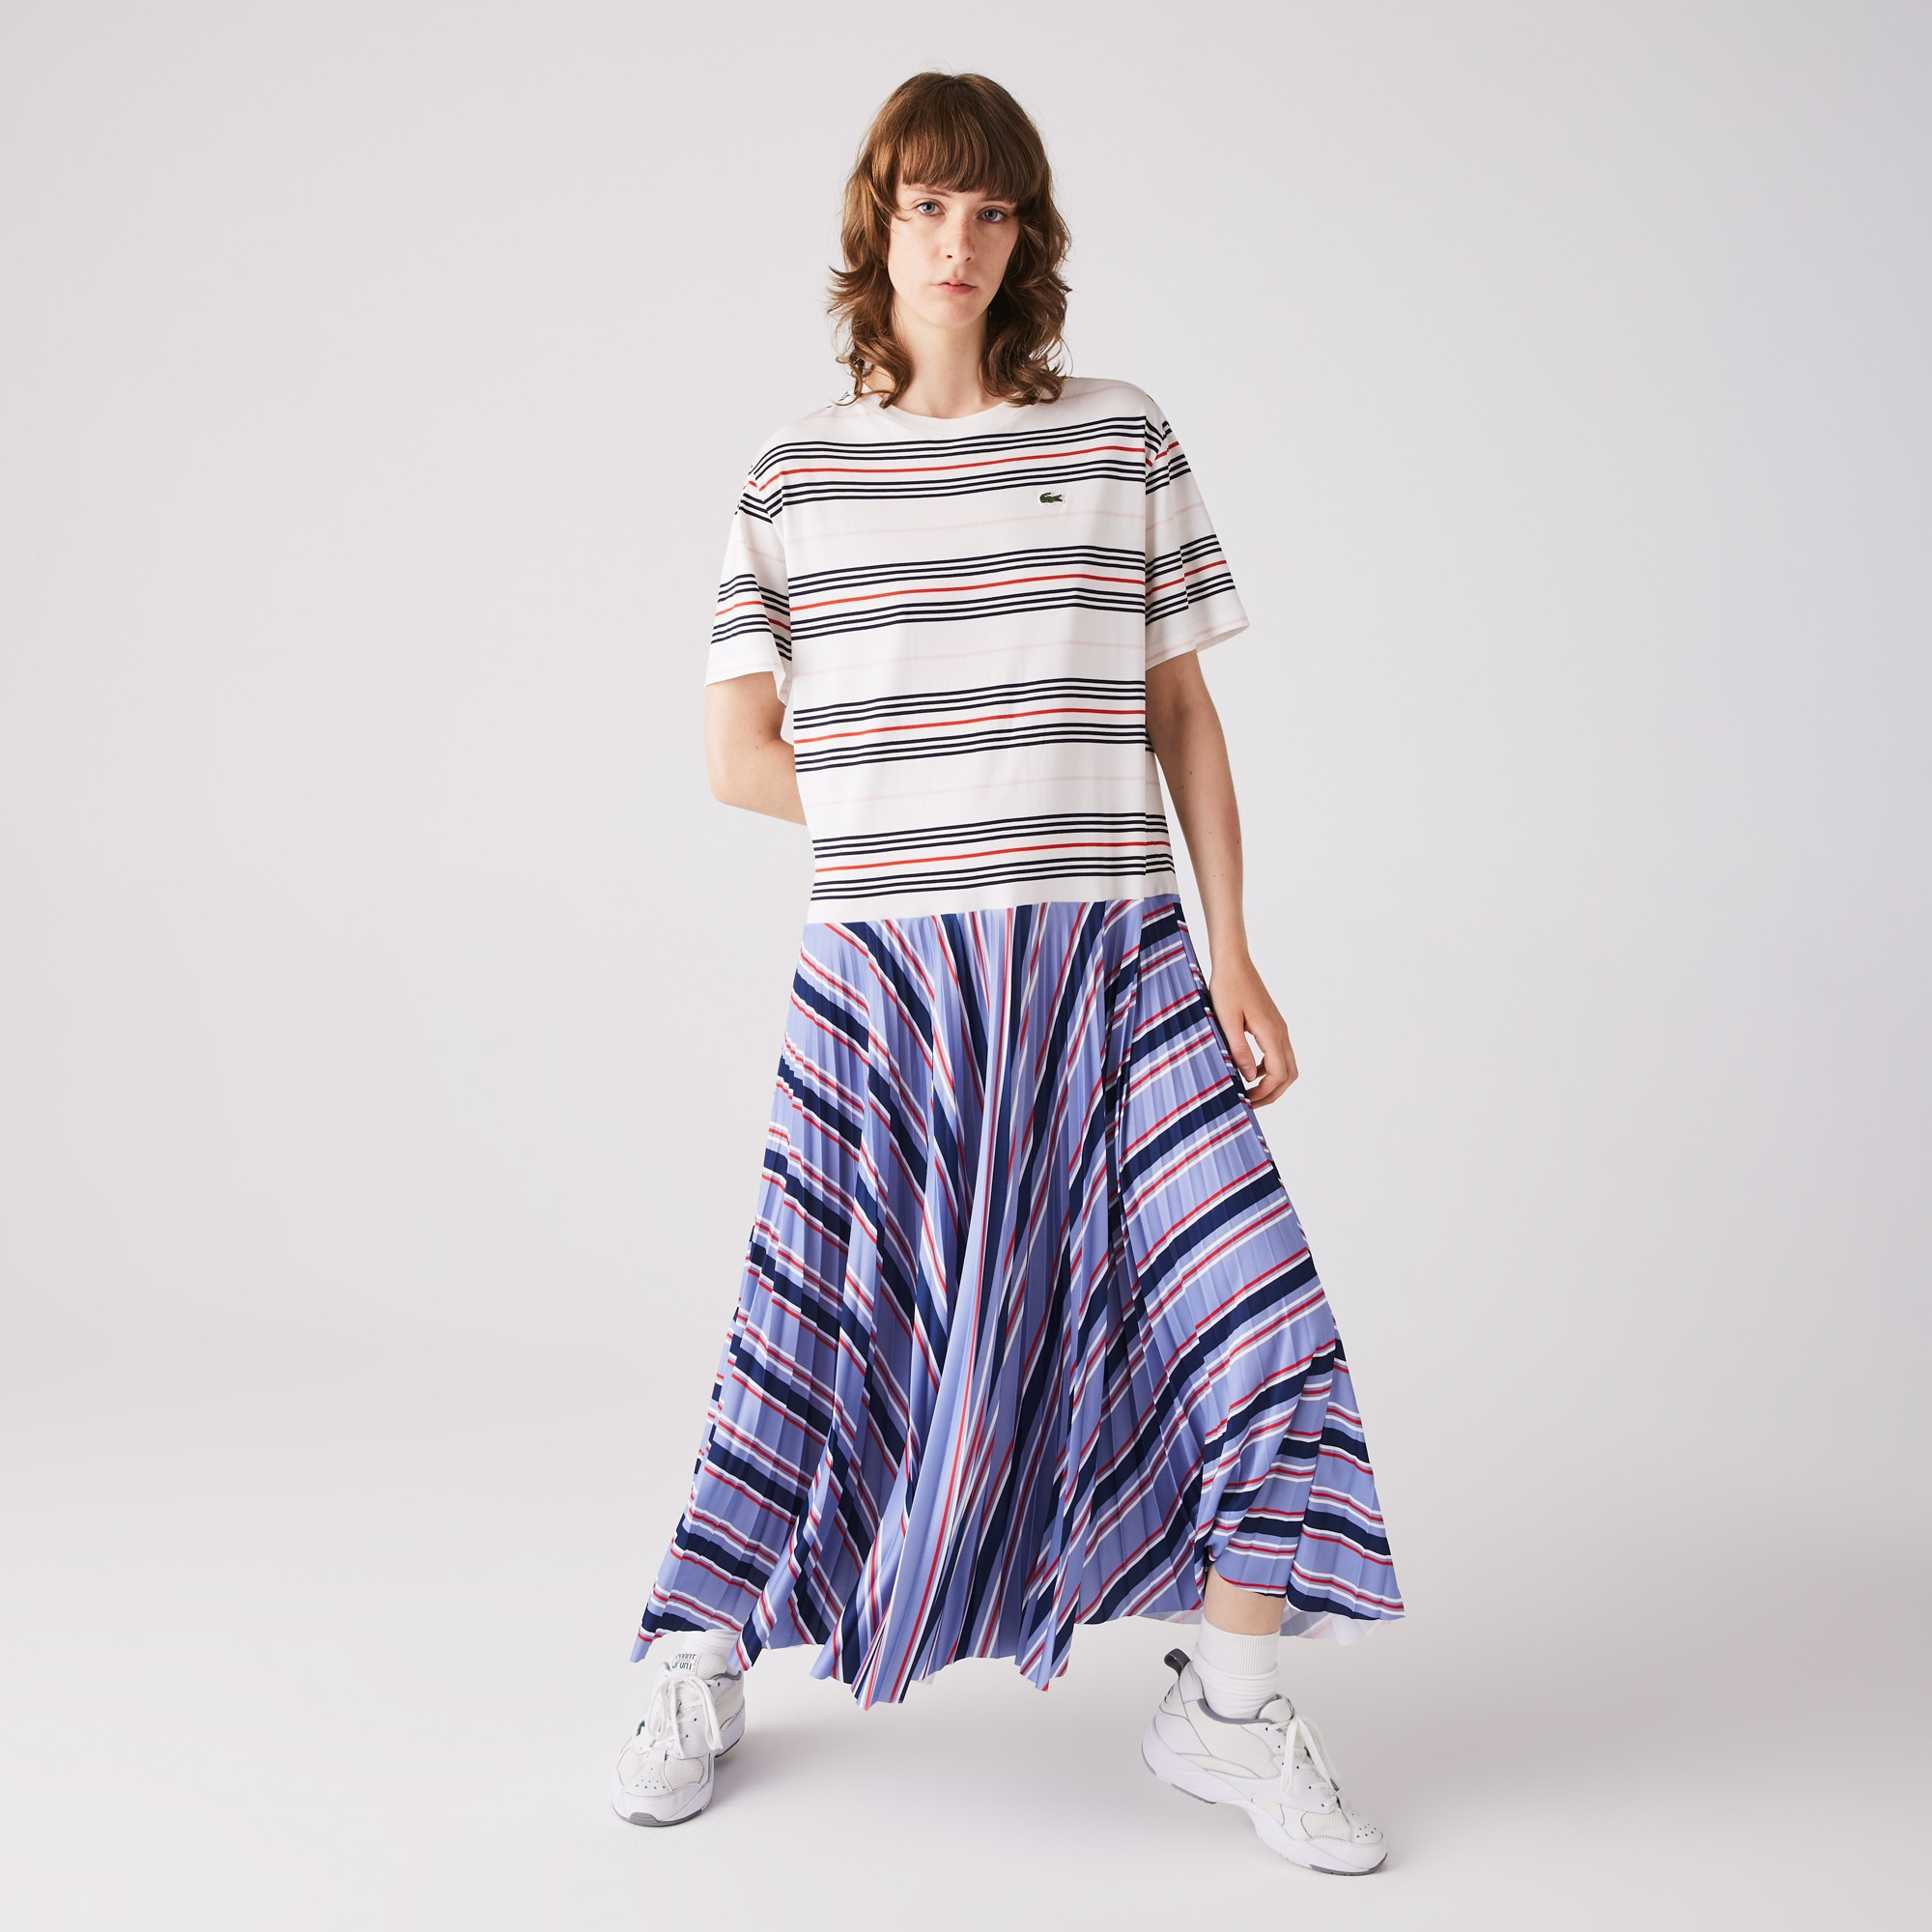 라코스테 스트라이프 주름 티셔츠 원피스 Lacoste Womens Dissimilar Striped Pleated Jersey T-shirt Dress